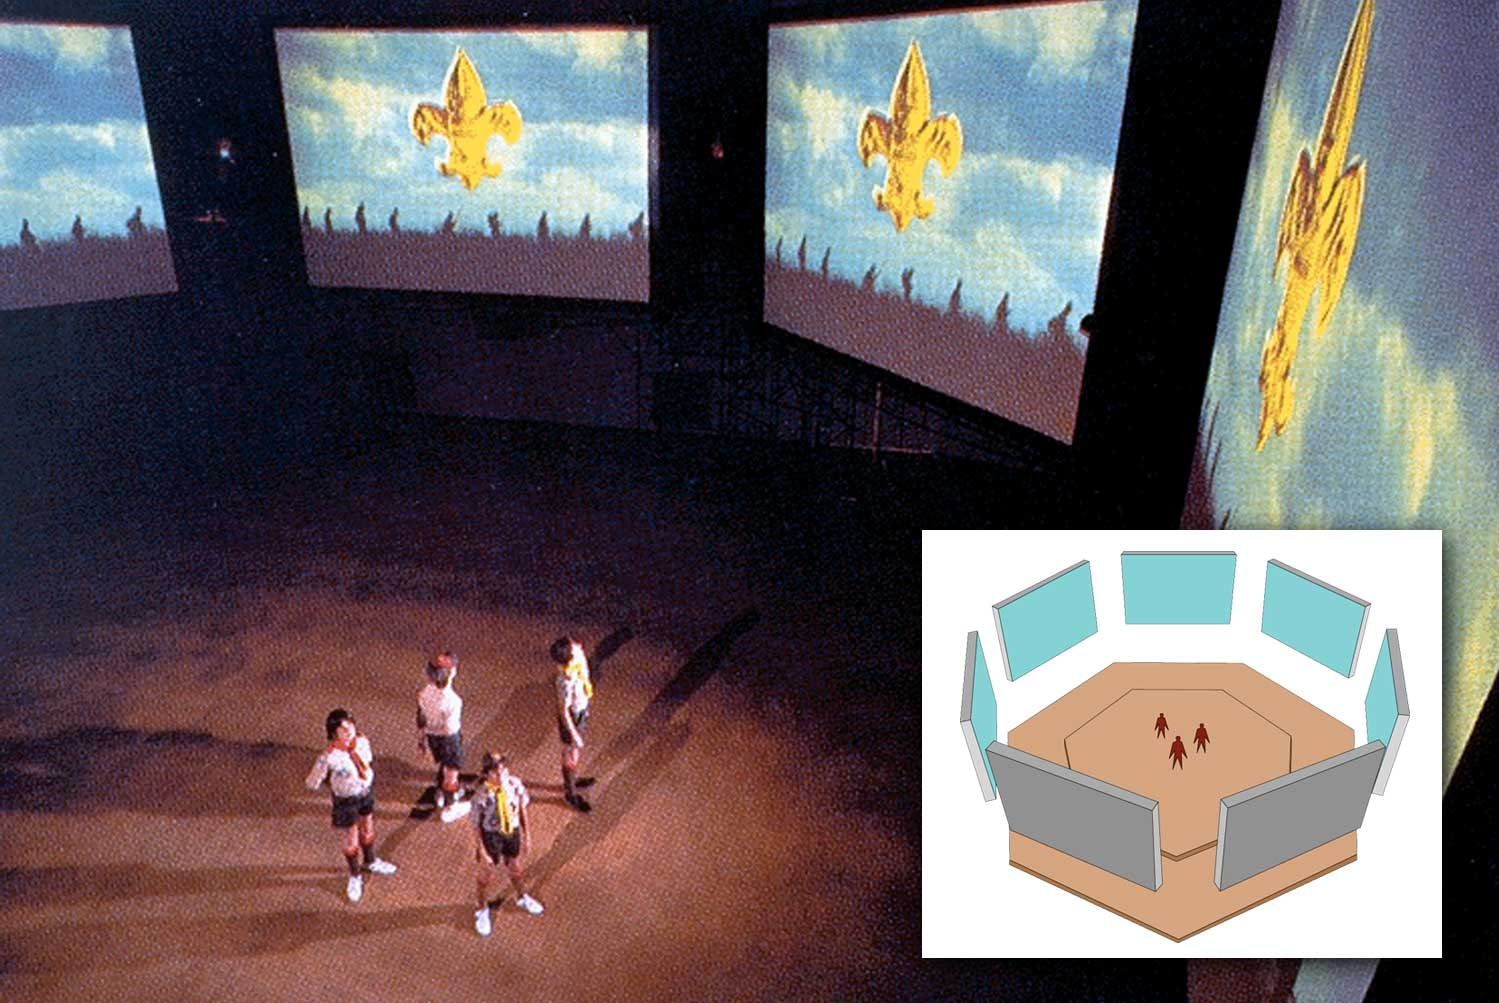 When the Boy Scouts of America built a museum in western Kentucky, they included a 360 degree orientation theatre. This experience presented the scouting experience with seven screens and fifteen projectors, completely surrounding visitors. It opened with a Court of Honor ceremony for a new Eagle Scout, and culminated with the celebration of a National Scouting Jamboree.